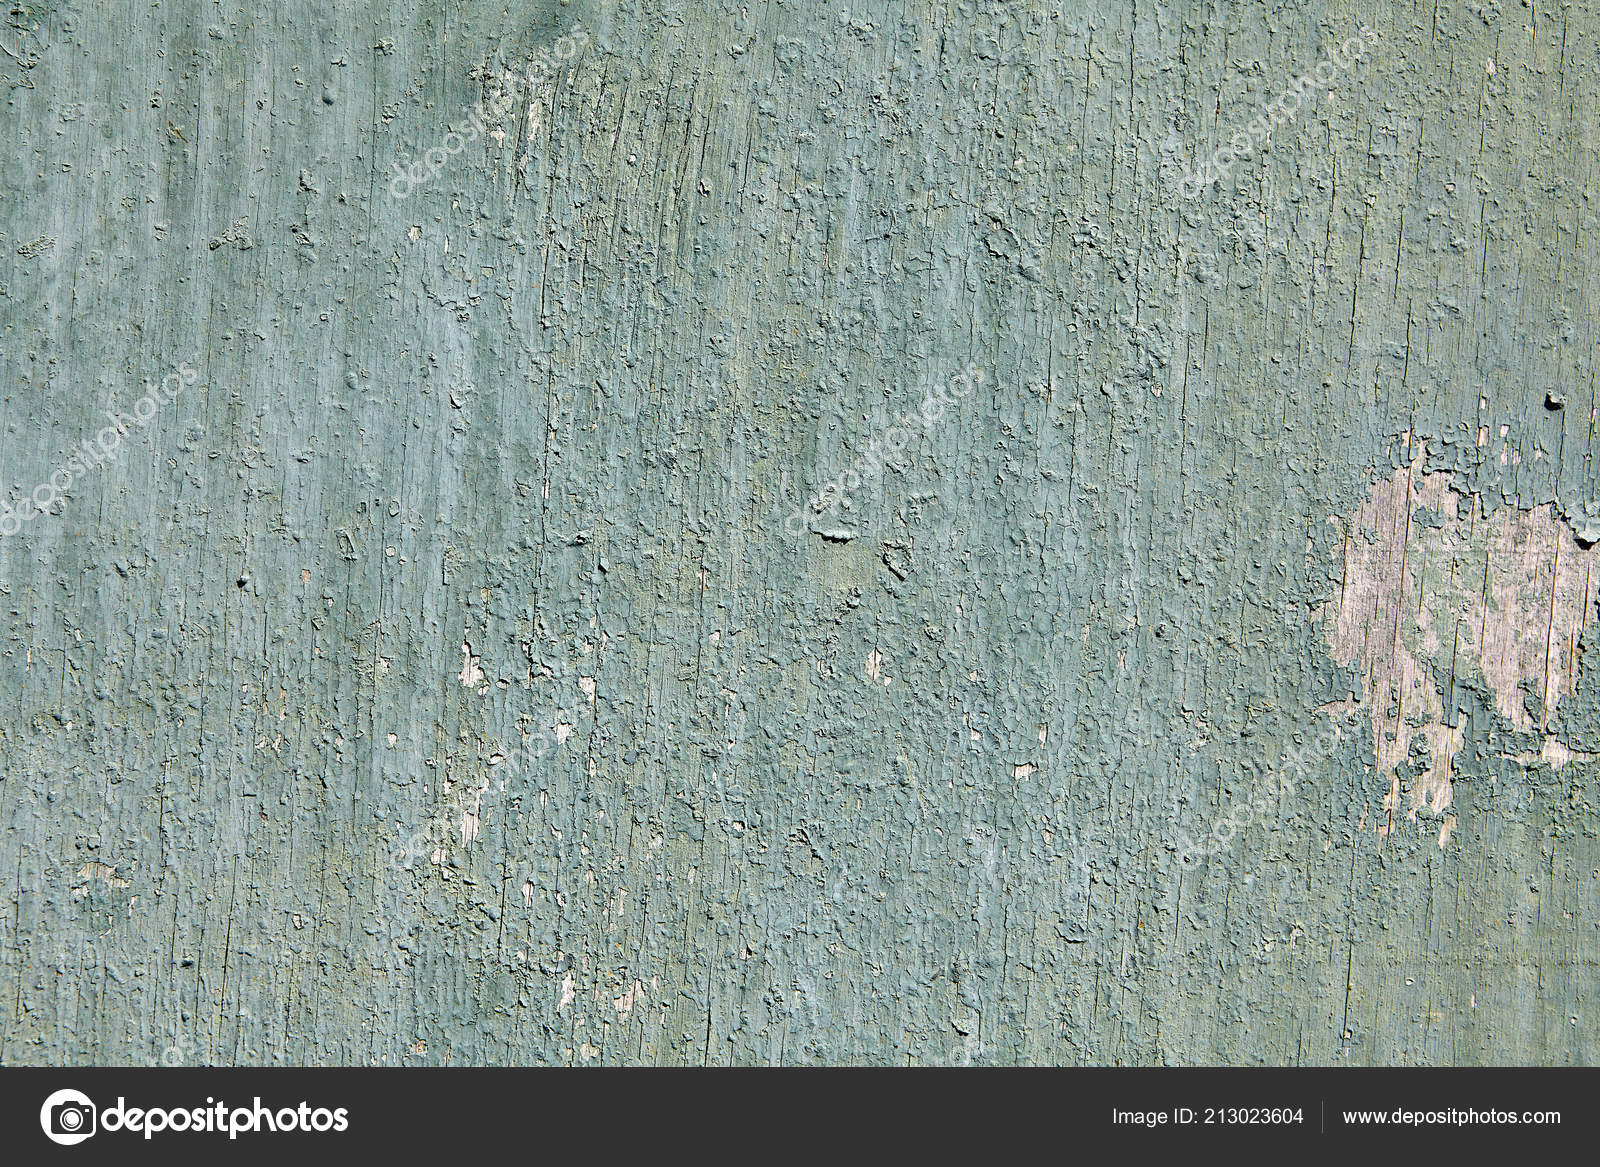 Closeup Peeling Pale Green Paint Surface Old Cracked Sheet Plywood Stock Photo C Grigvovan 213023604